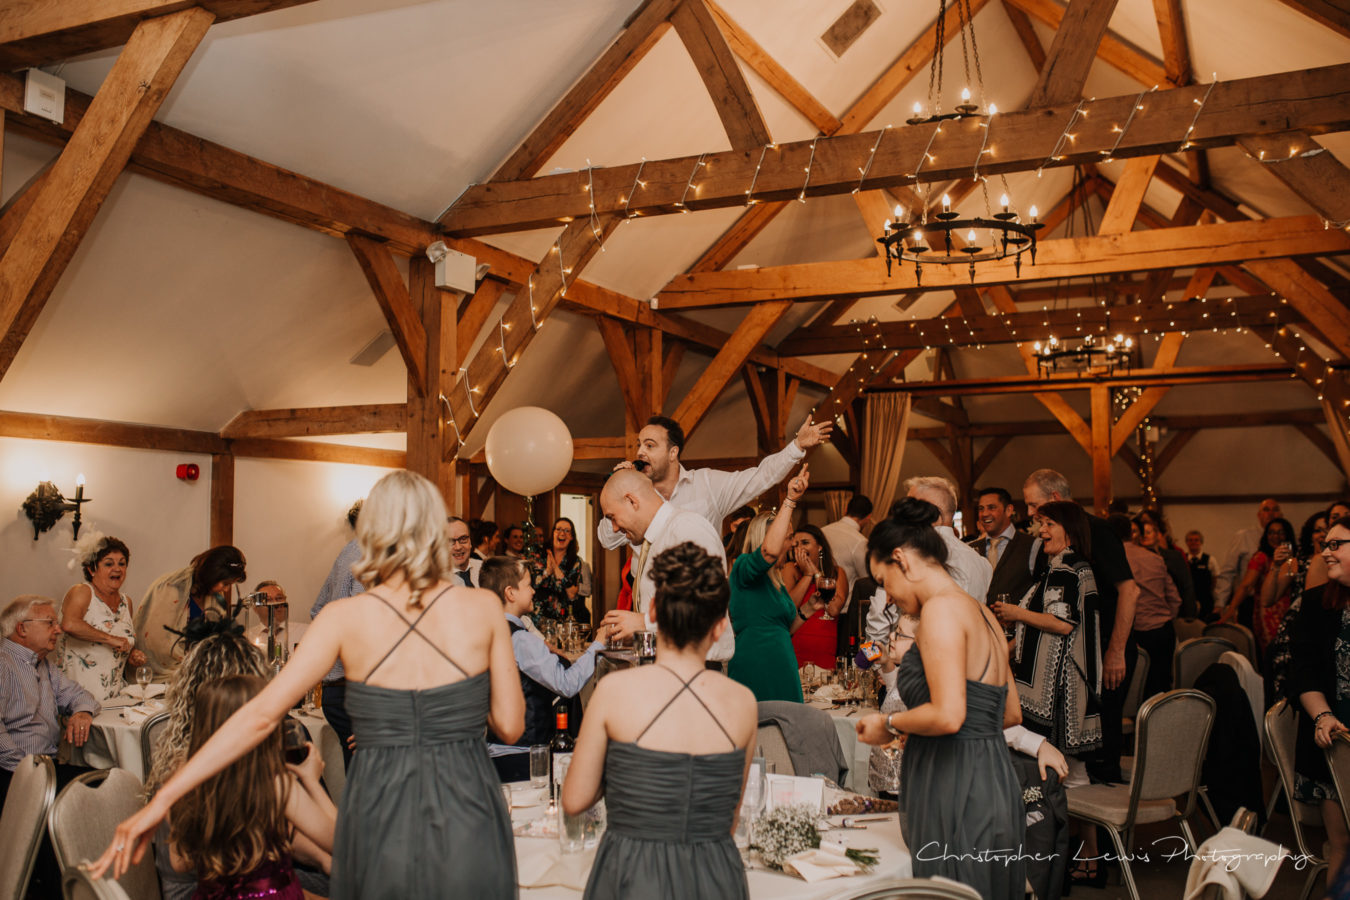 Sandhole-Oak-Barn-Wedding-Christopher-Lewis-Photography- 47